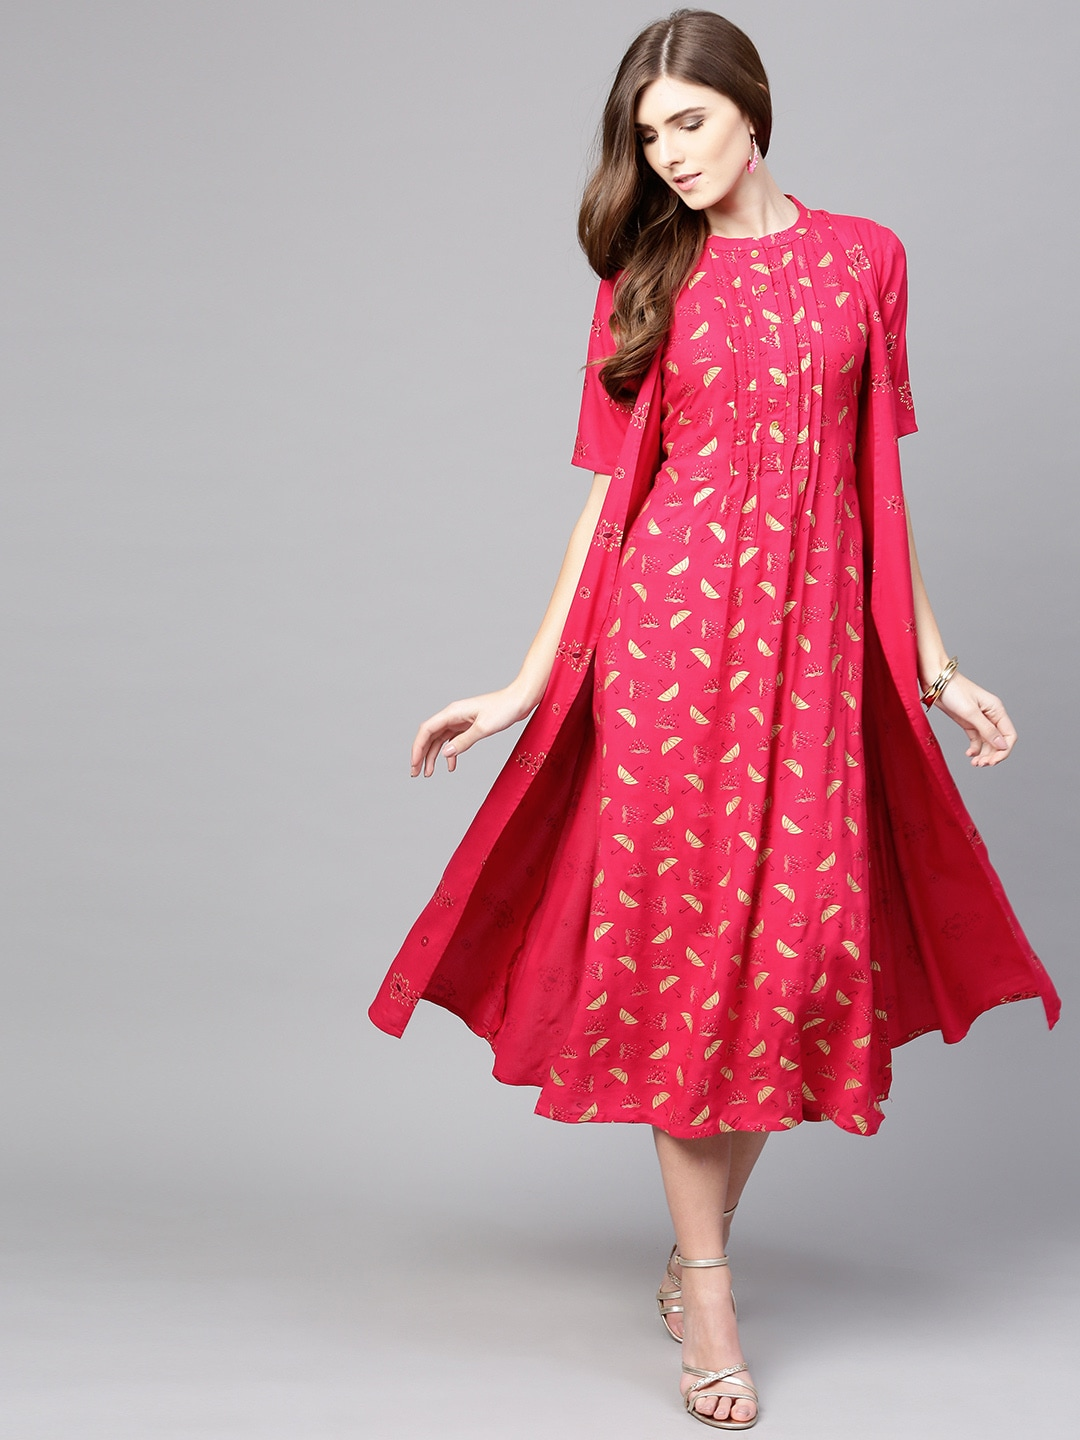 20cb8d6254 Pink Dress - Buy Pink Dress Online in India